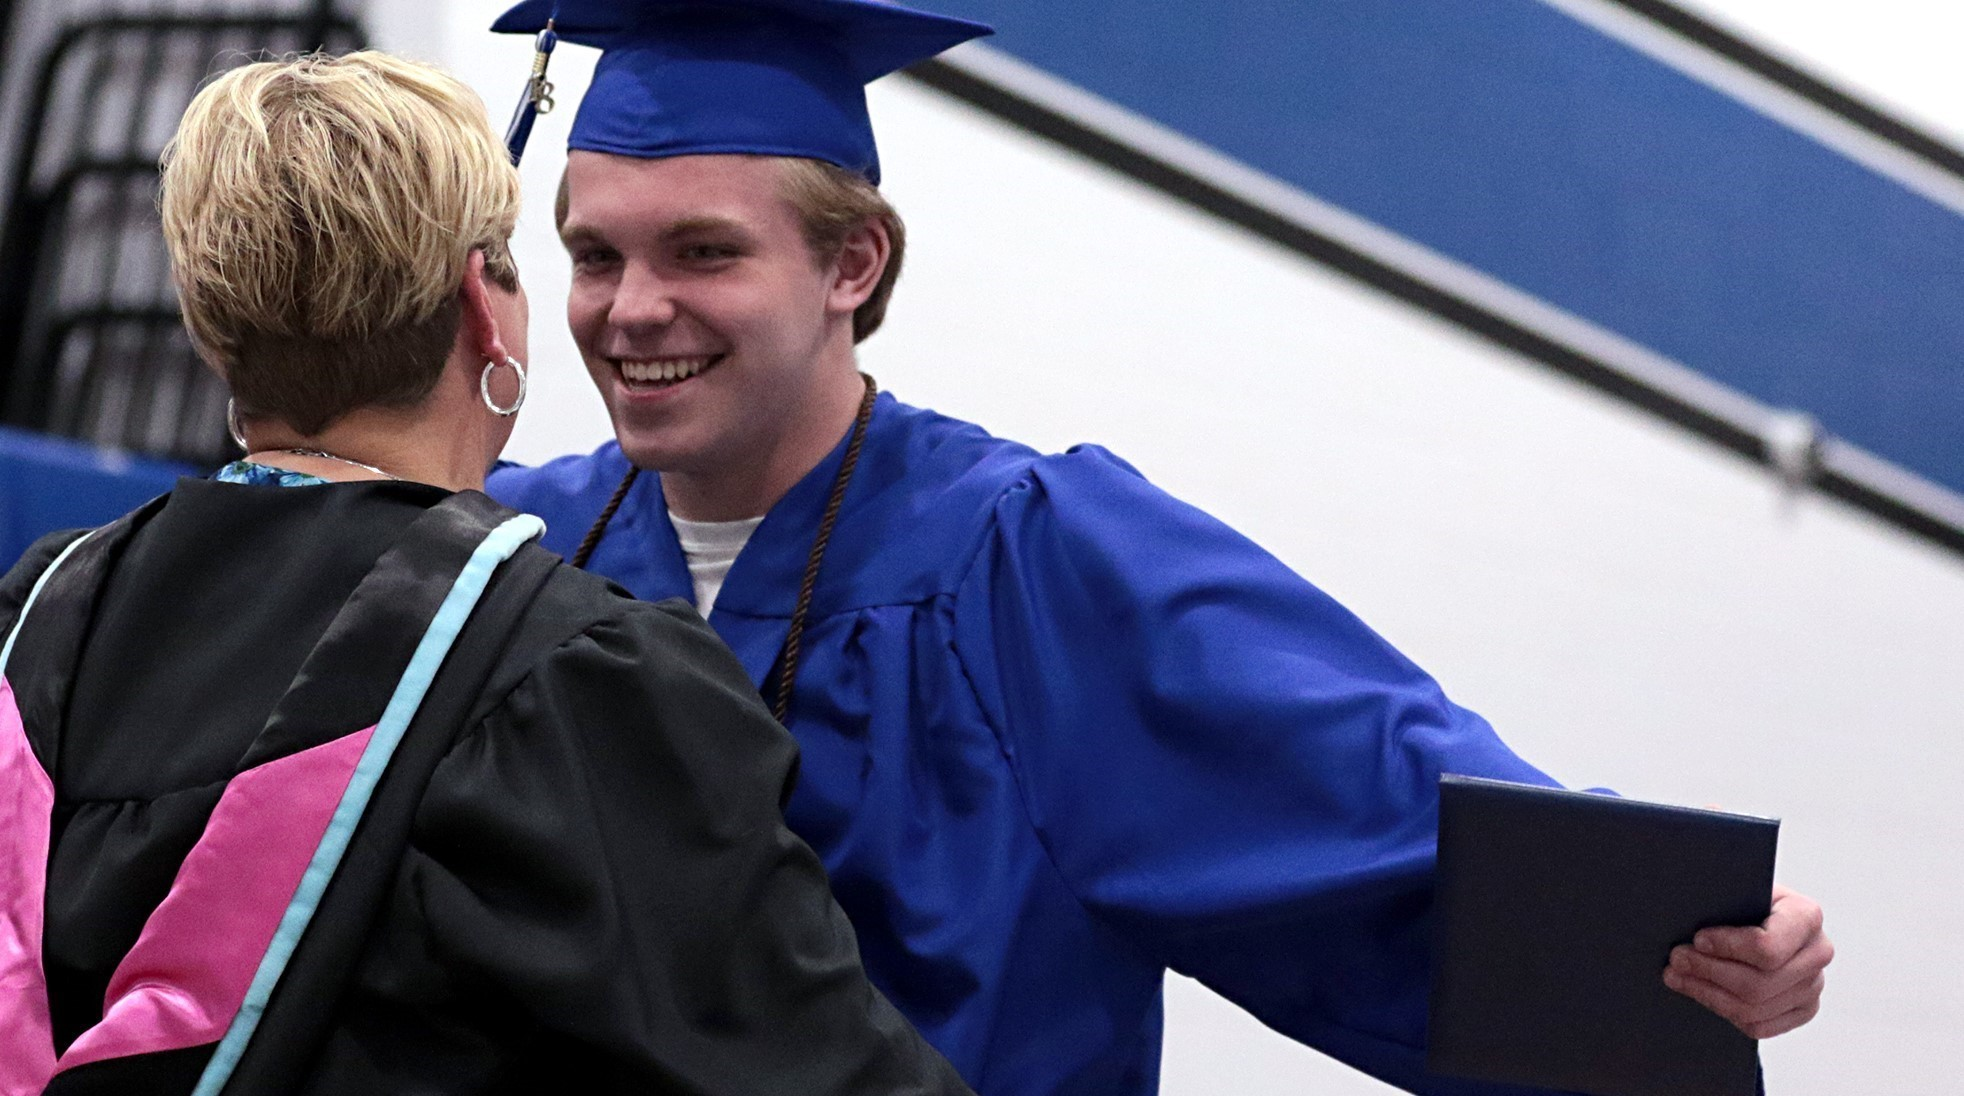 boy graduate preparing to hug principal